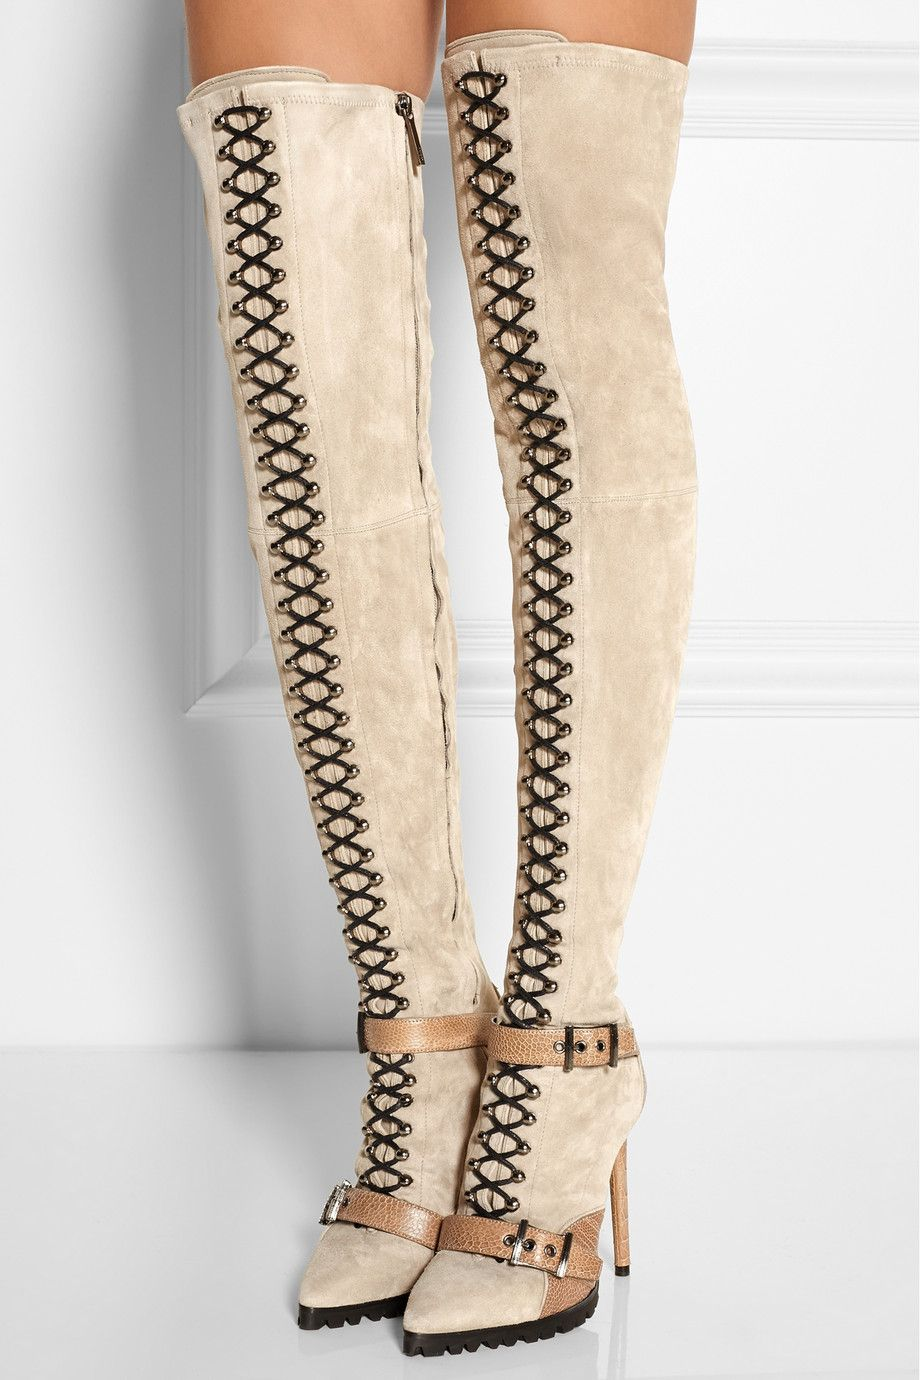 Emilio Pucci Suede Knee-High Boots cheap real eastbay release dates for sale clearance new arrival pre order cheap price 6WoWD1SNTO